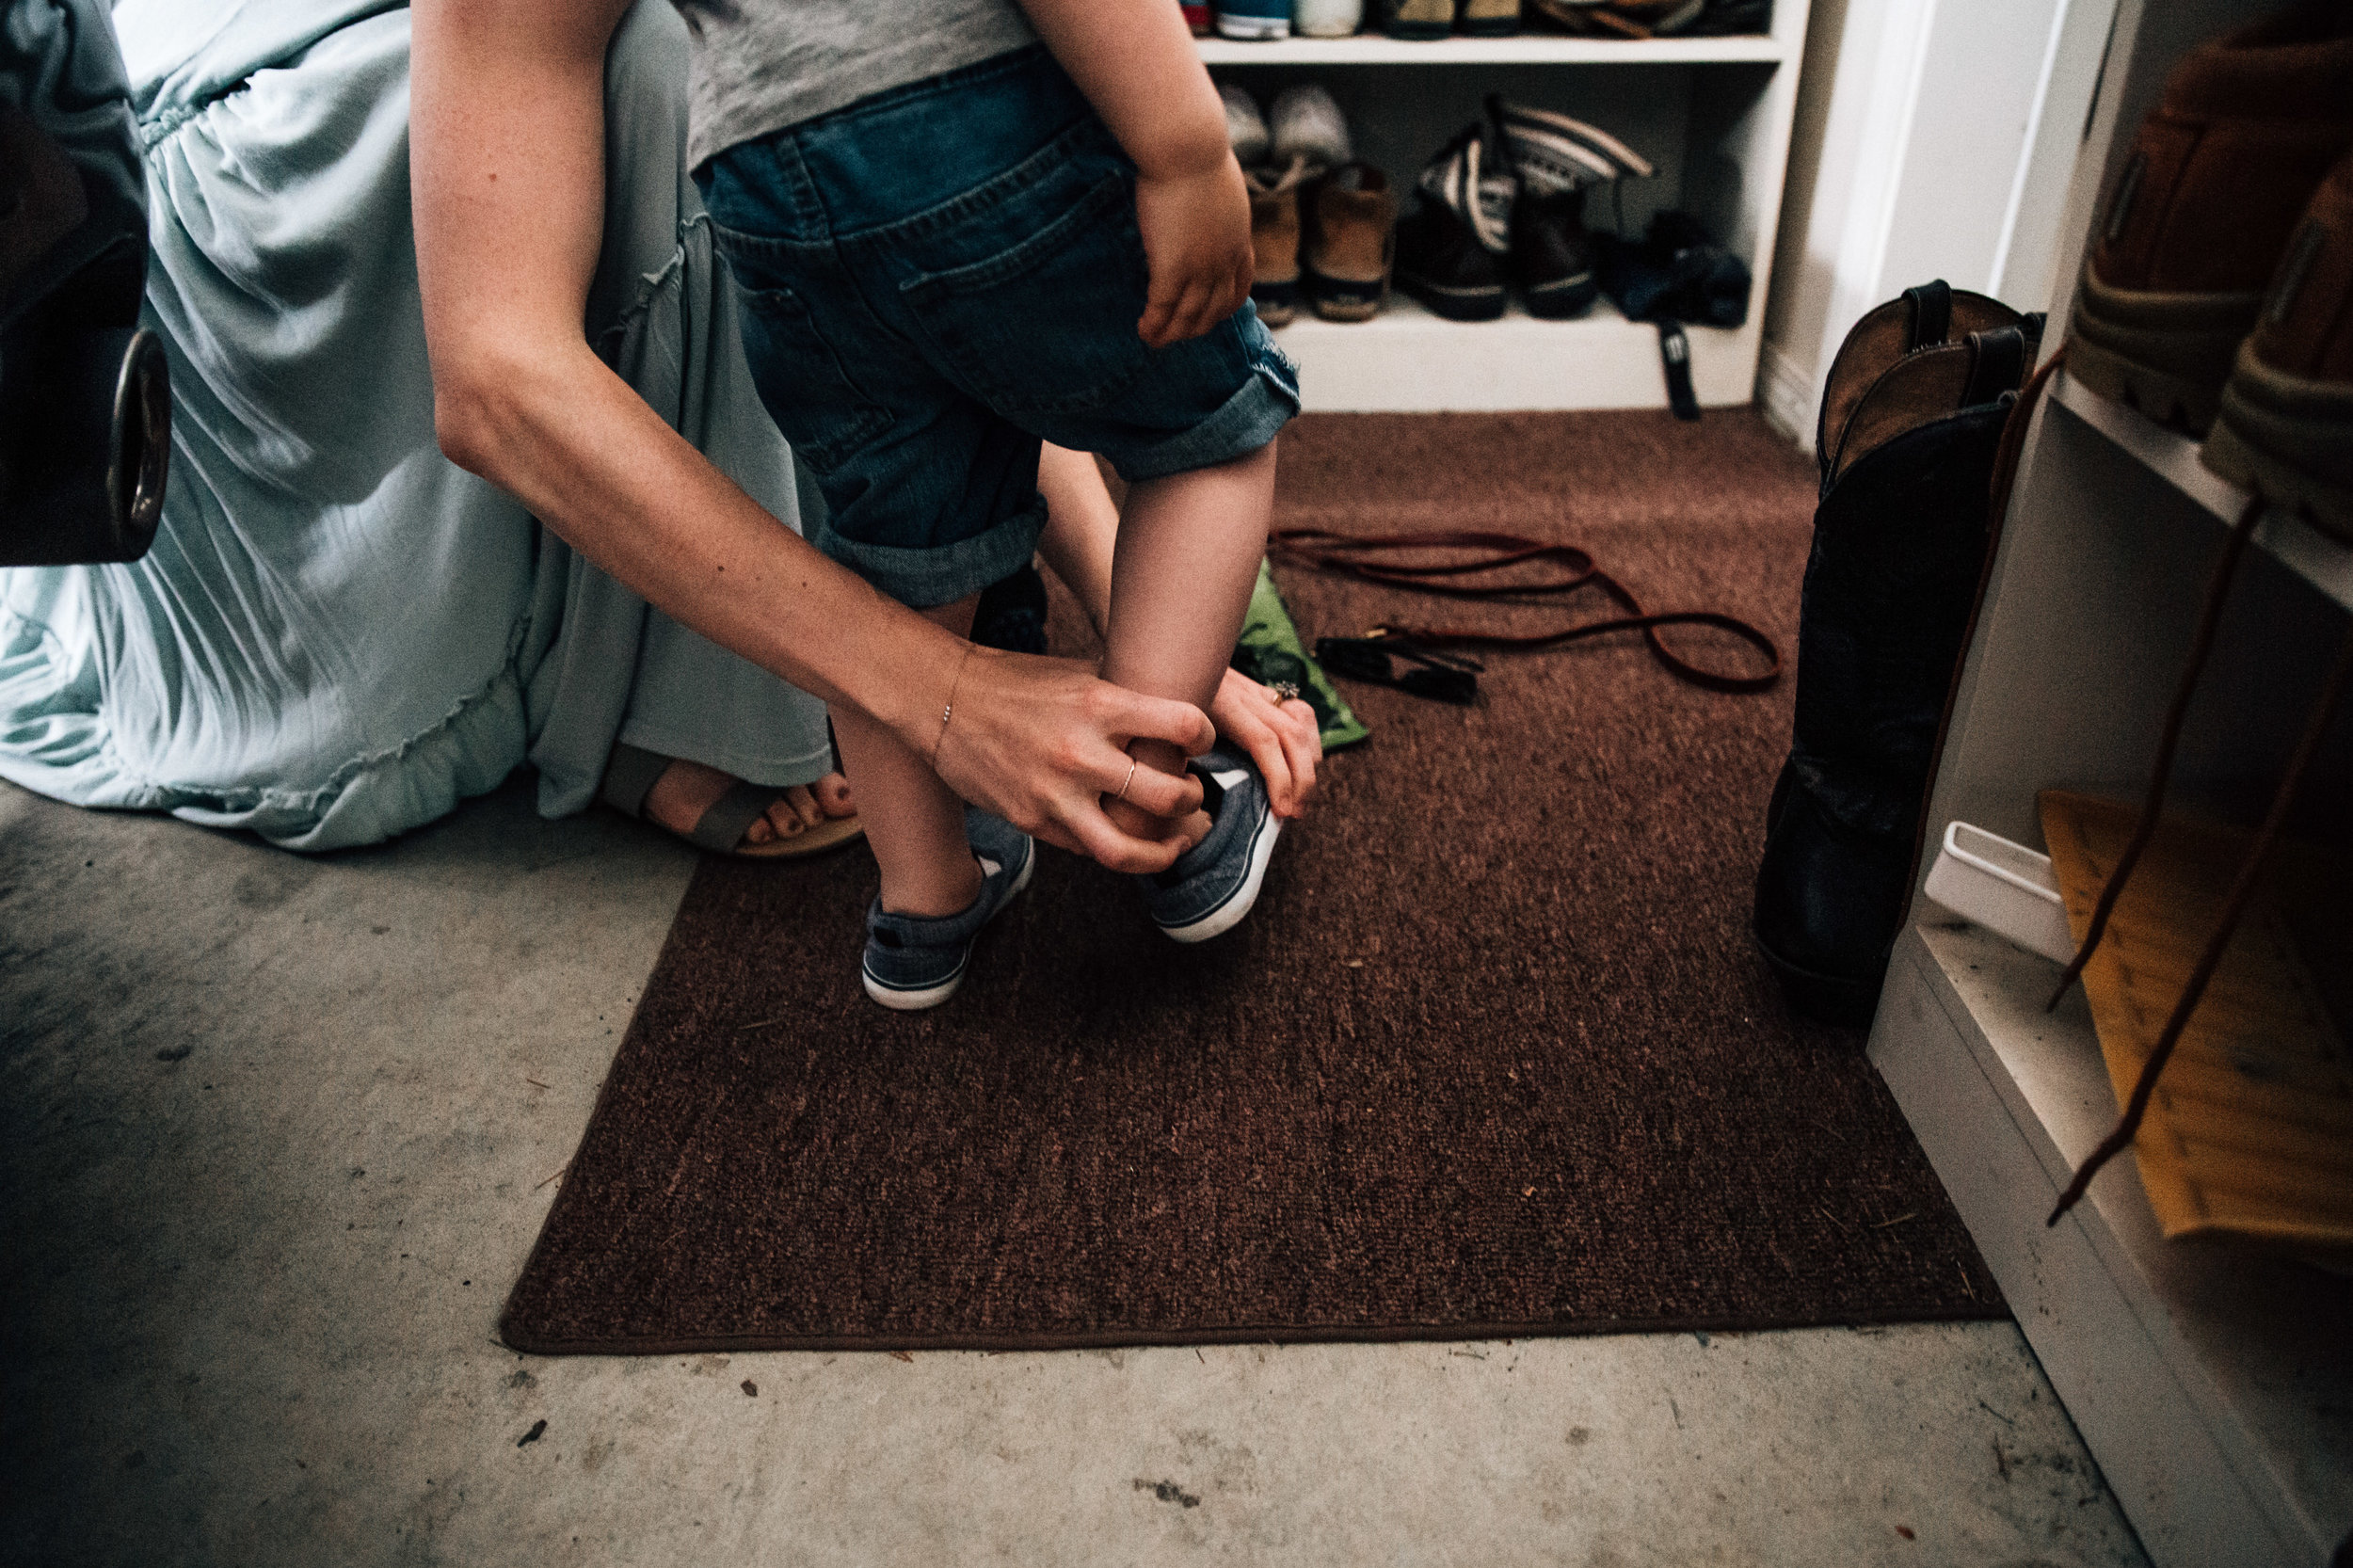 mom putting shoes on toddler boy in garage